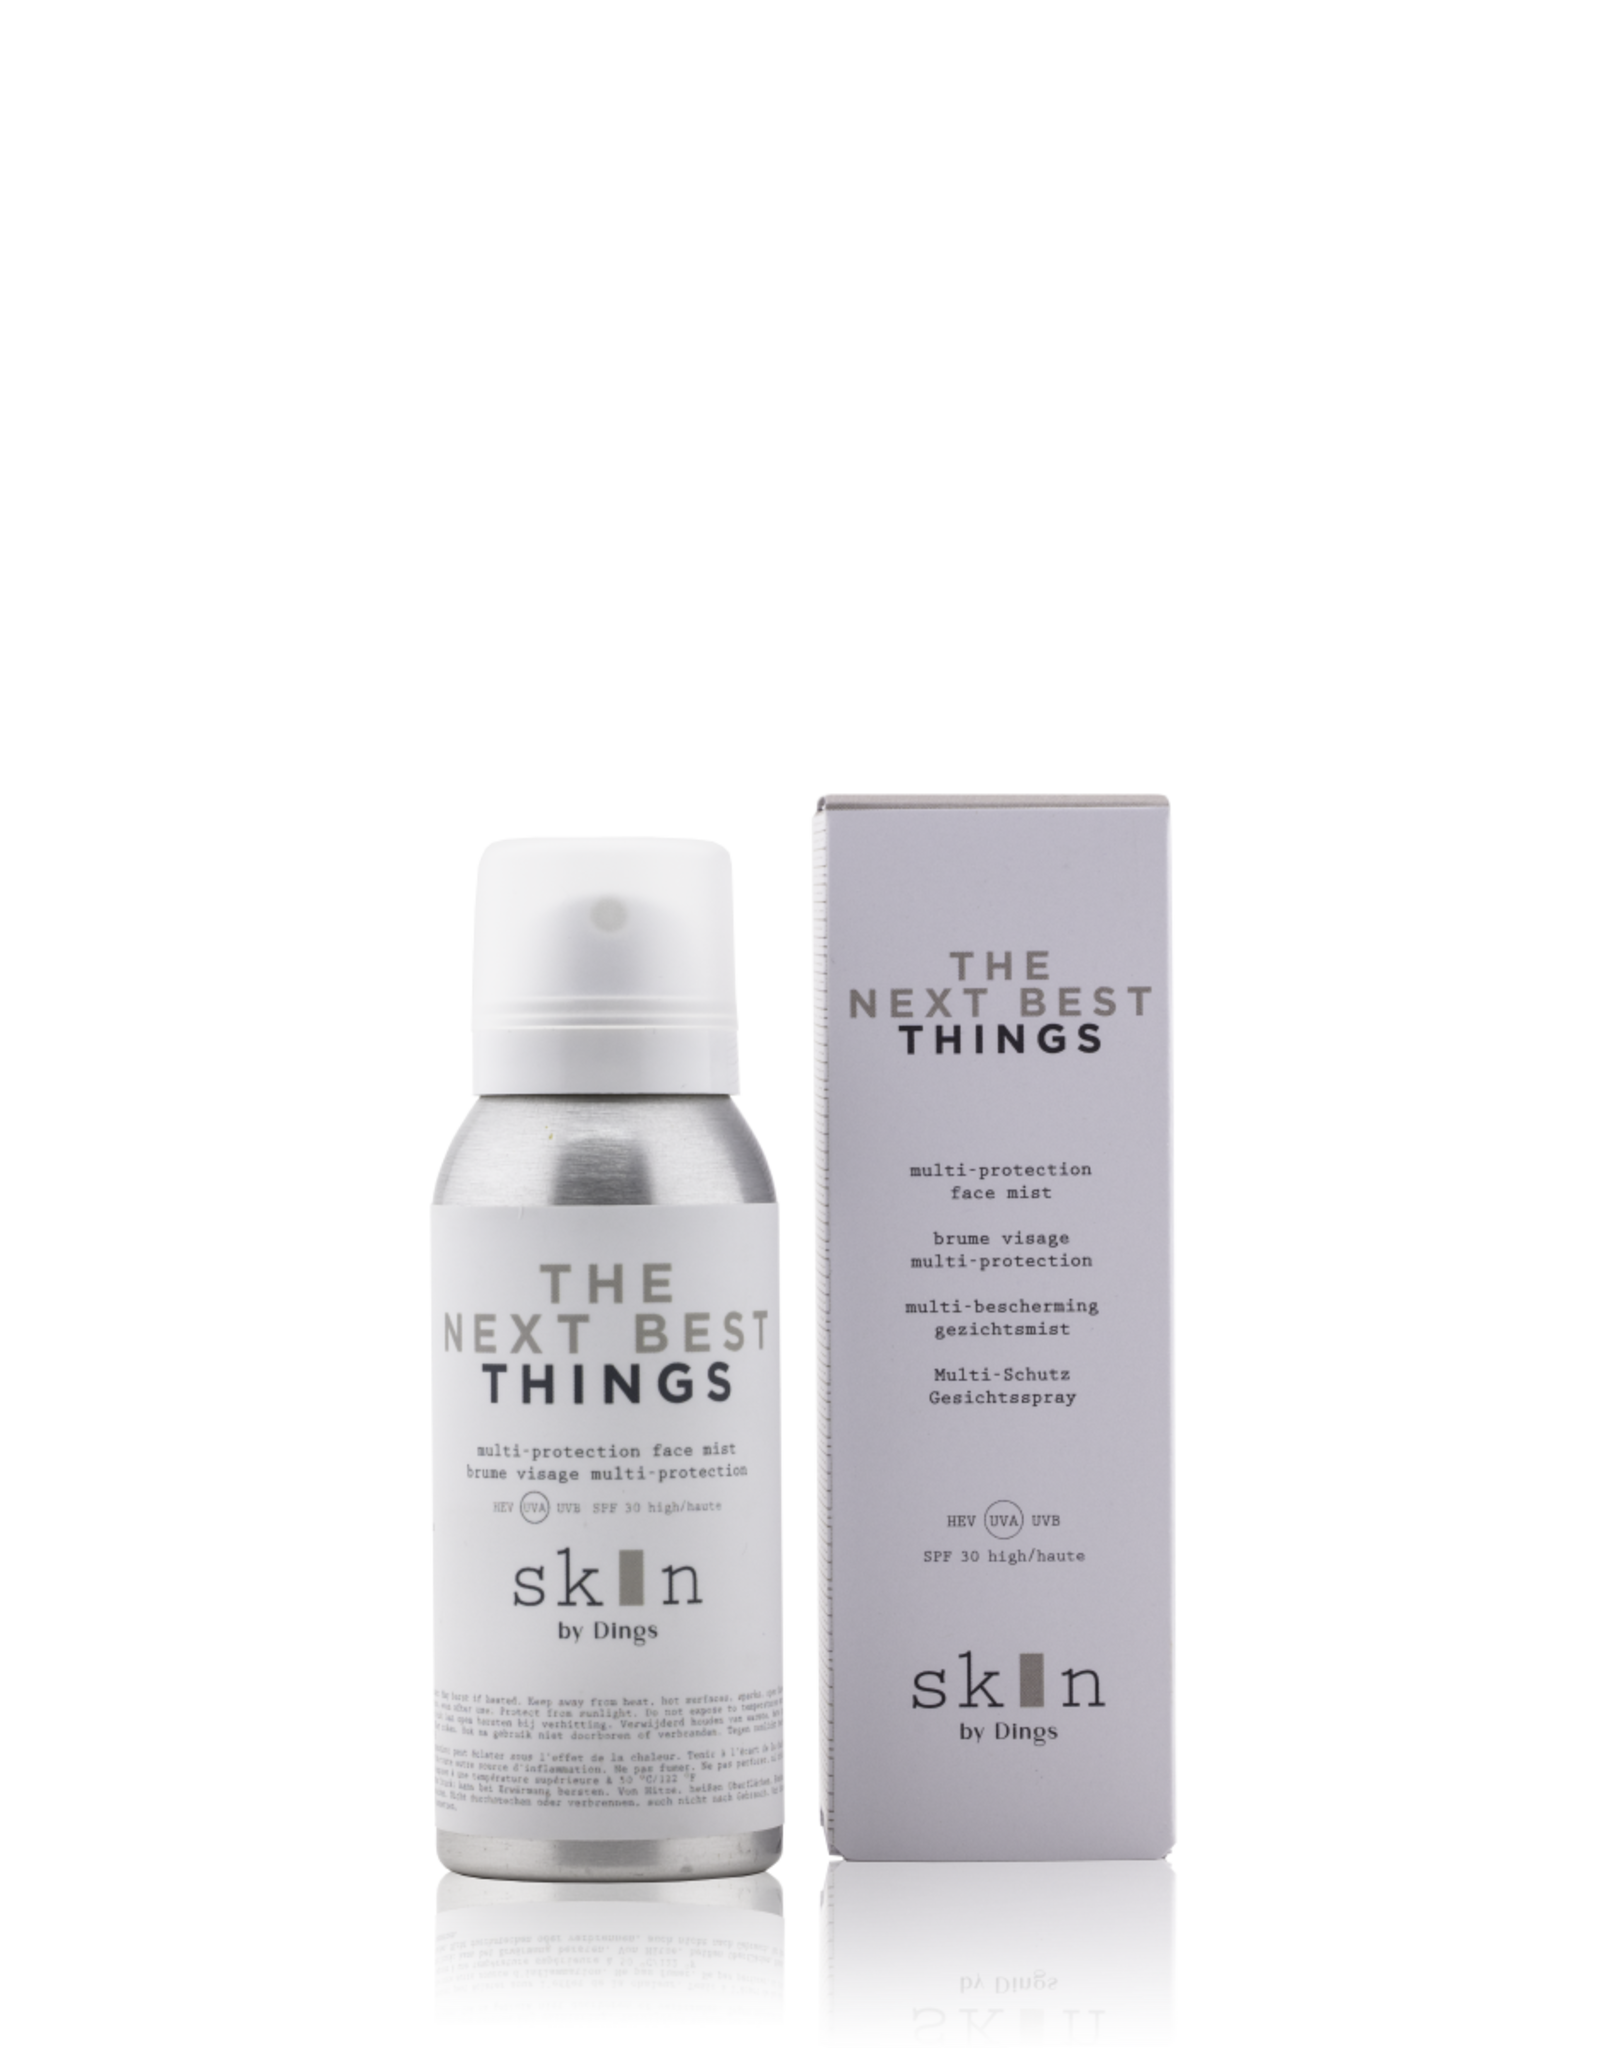 Skin by Dings The next best thing